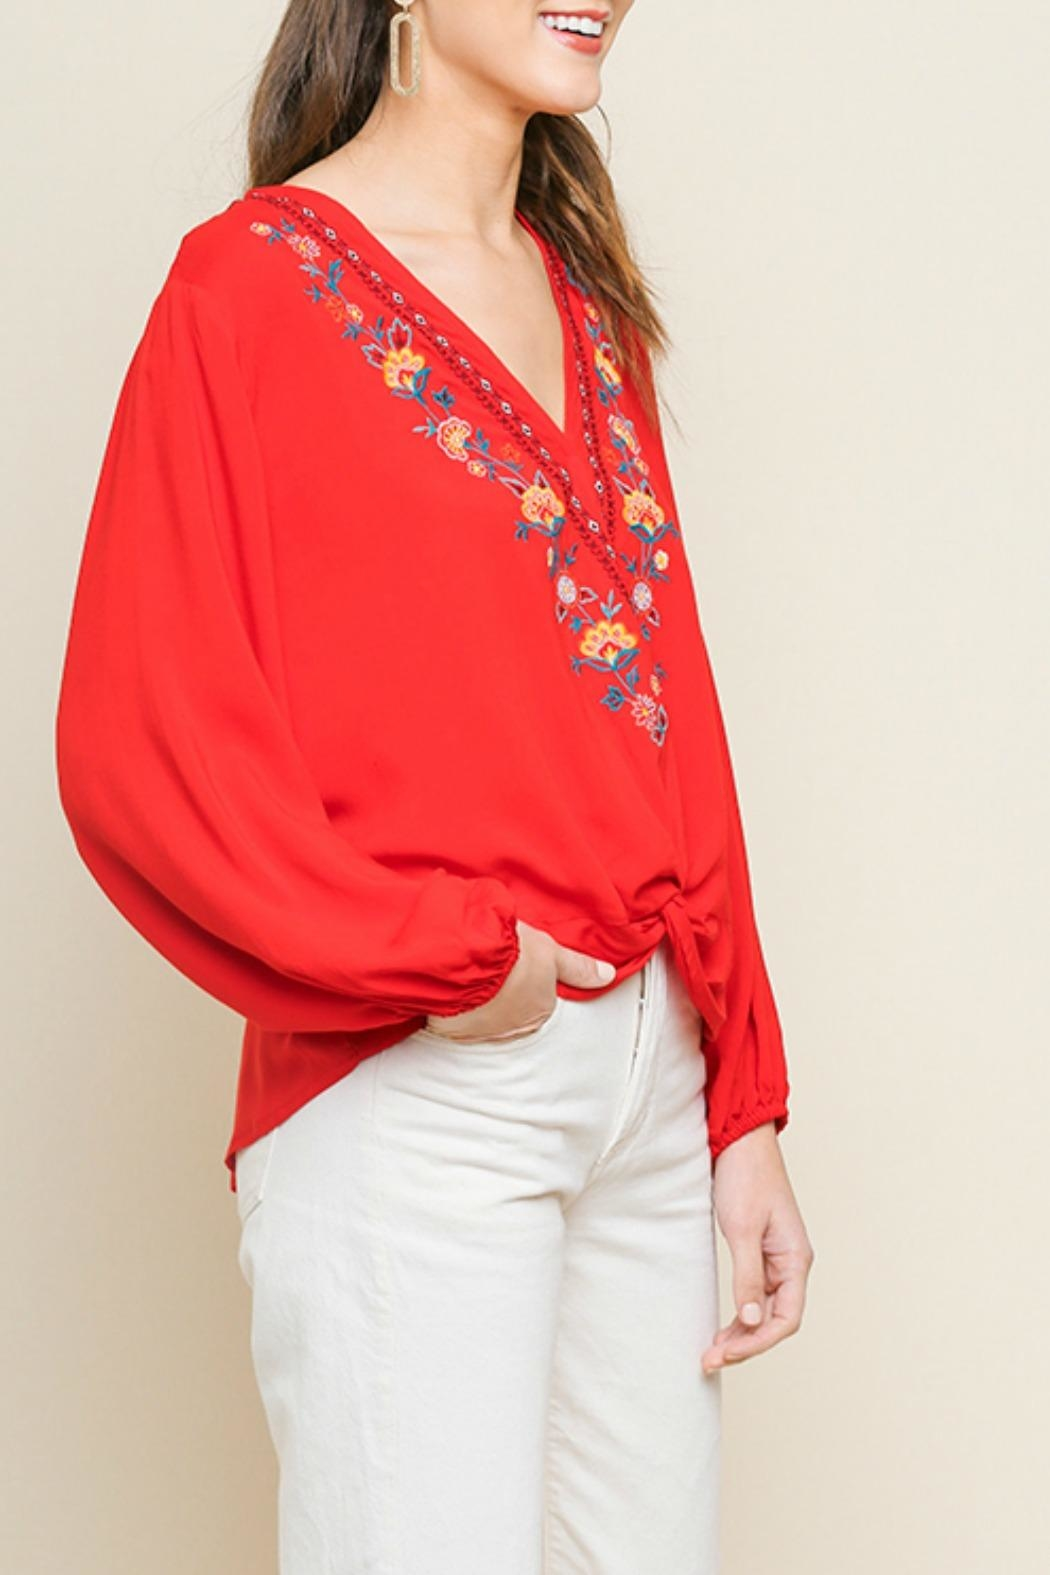 Umgee USA Jenny Floral Top - Side Cropped Image